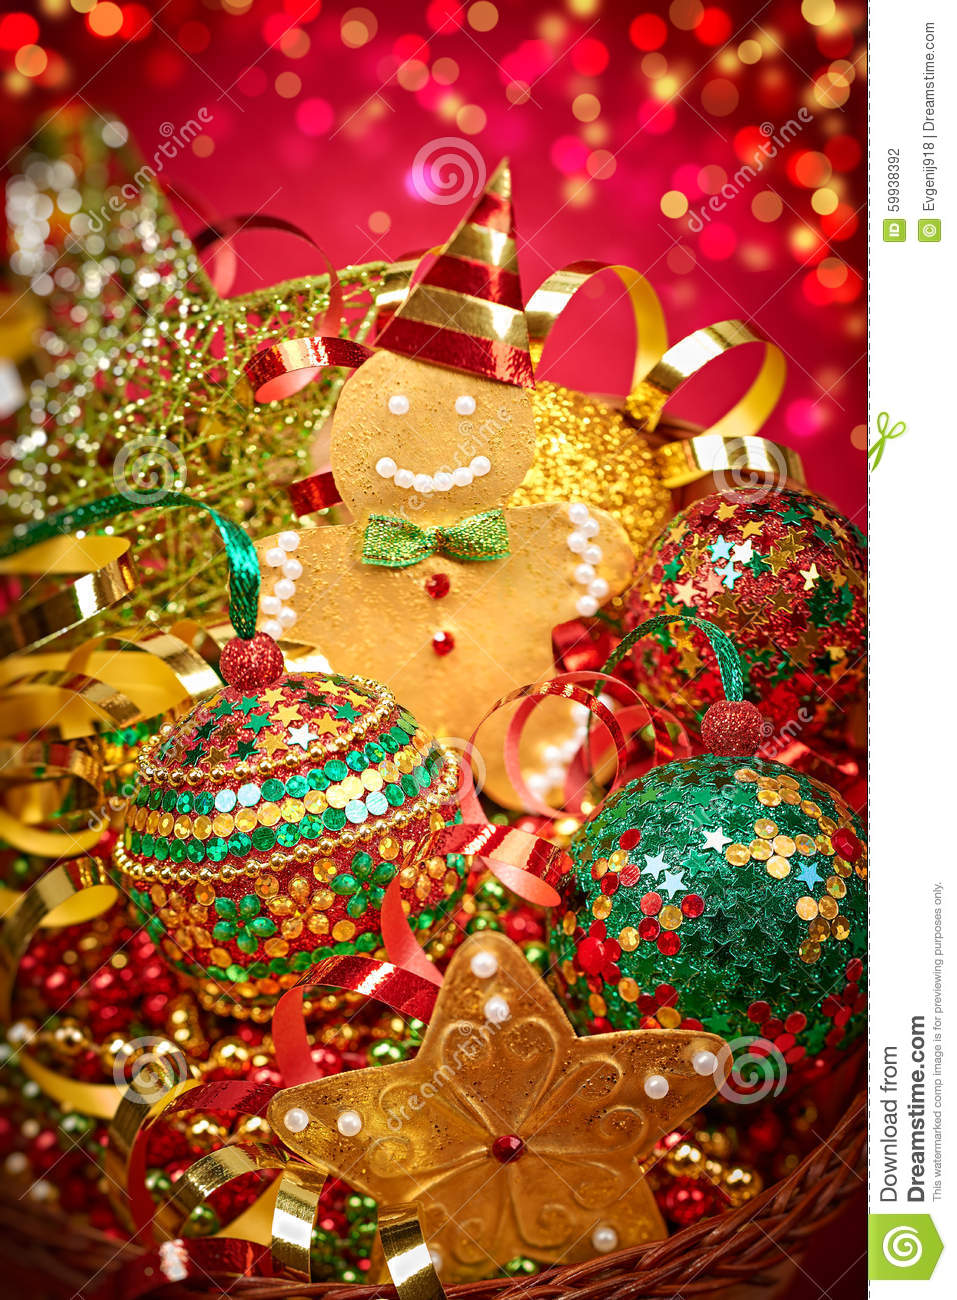 New year 2016 merry christmas party decoration stock for 15 years party decoration